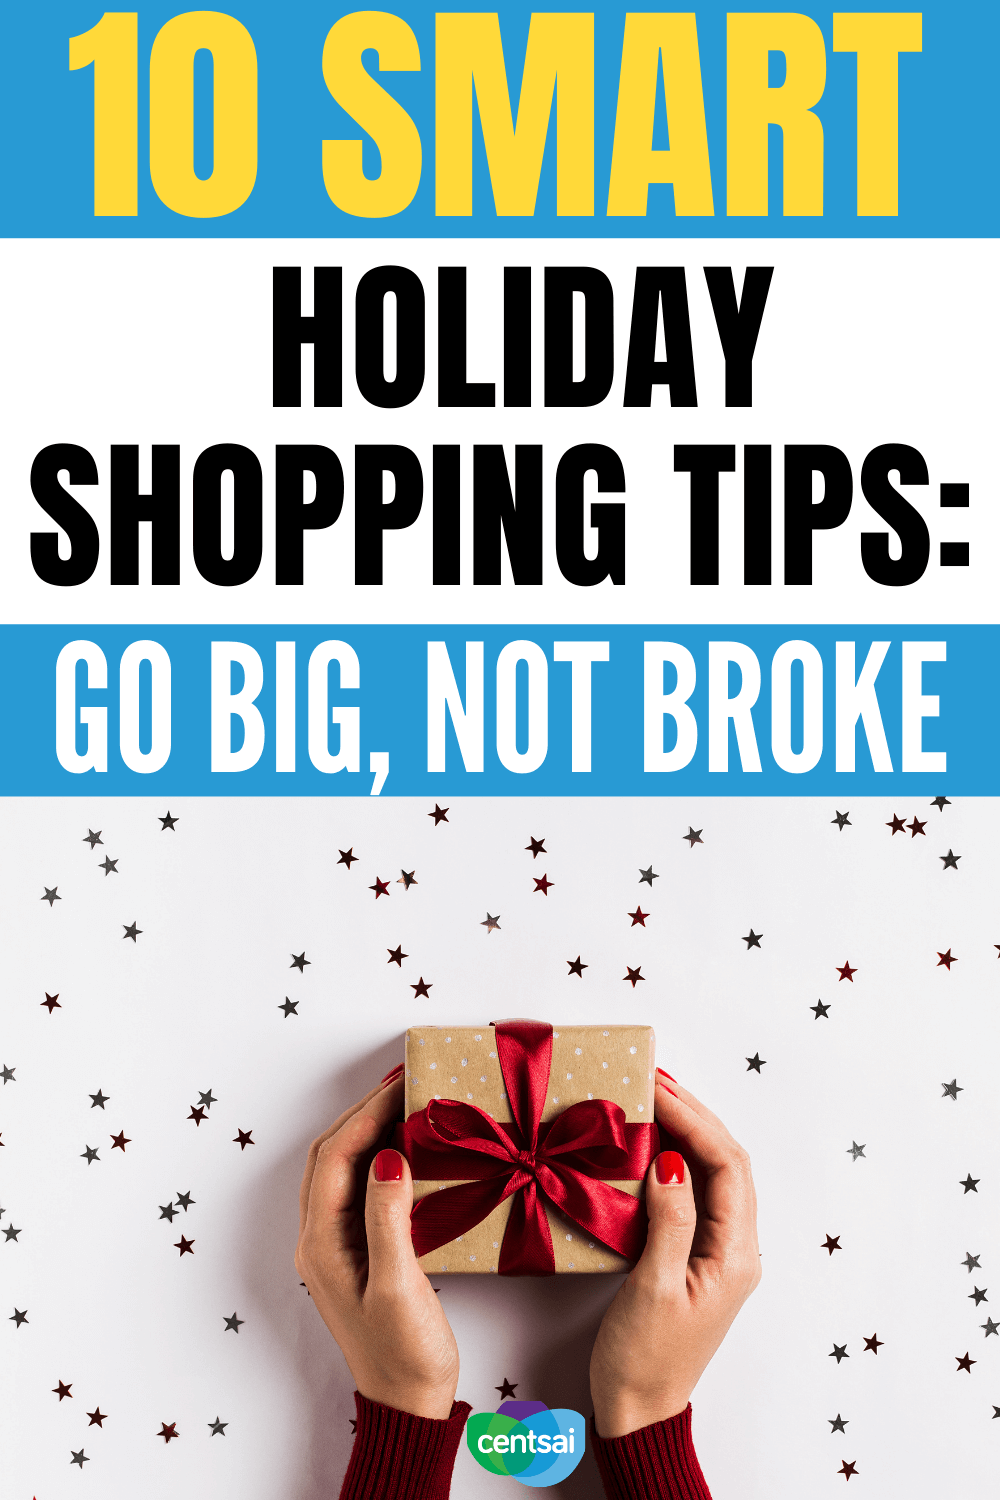 10 Smart Shopping Tips for Every Holiday. Holiday gifts don't have to break the bank. Check out these smart holiday shopping tips to knock gift-buying season out of the park. #holiday #budget #savingtips